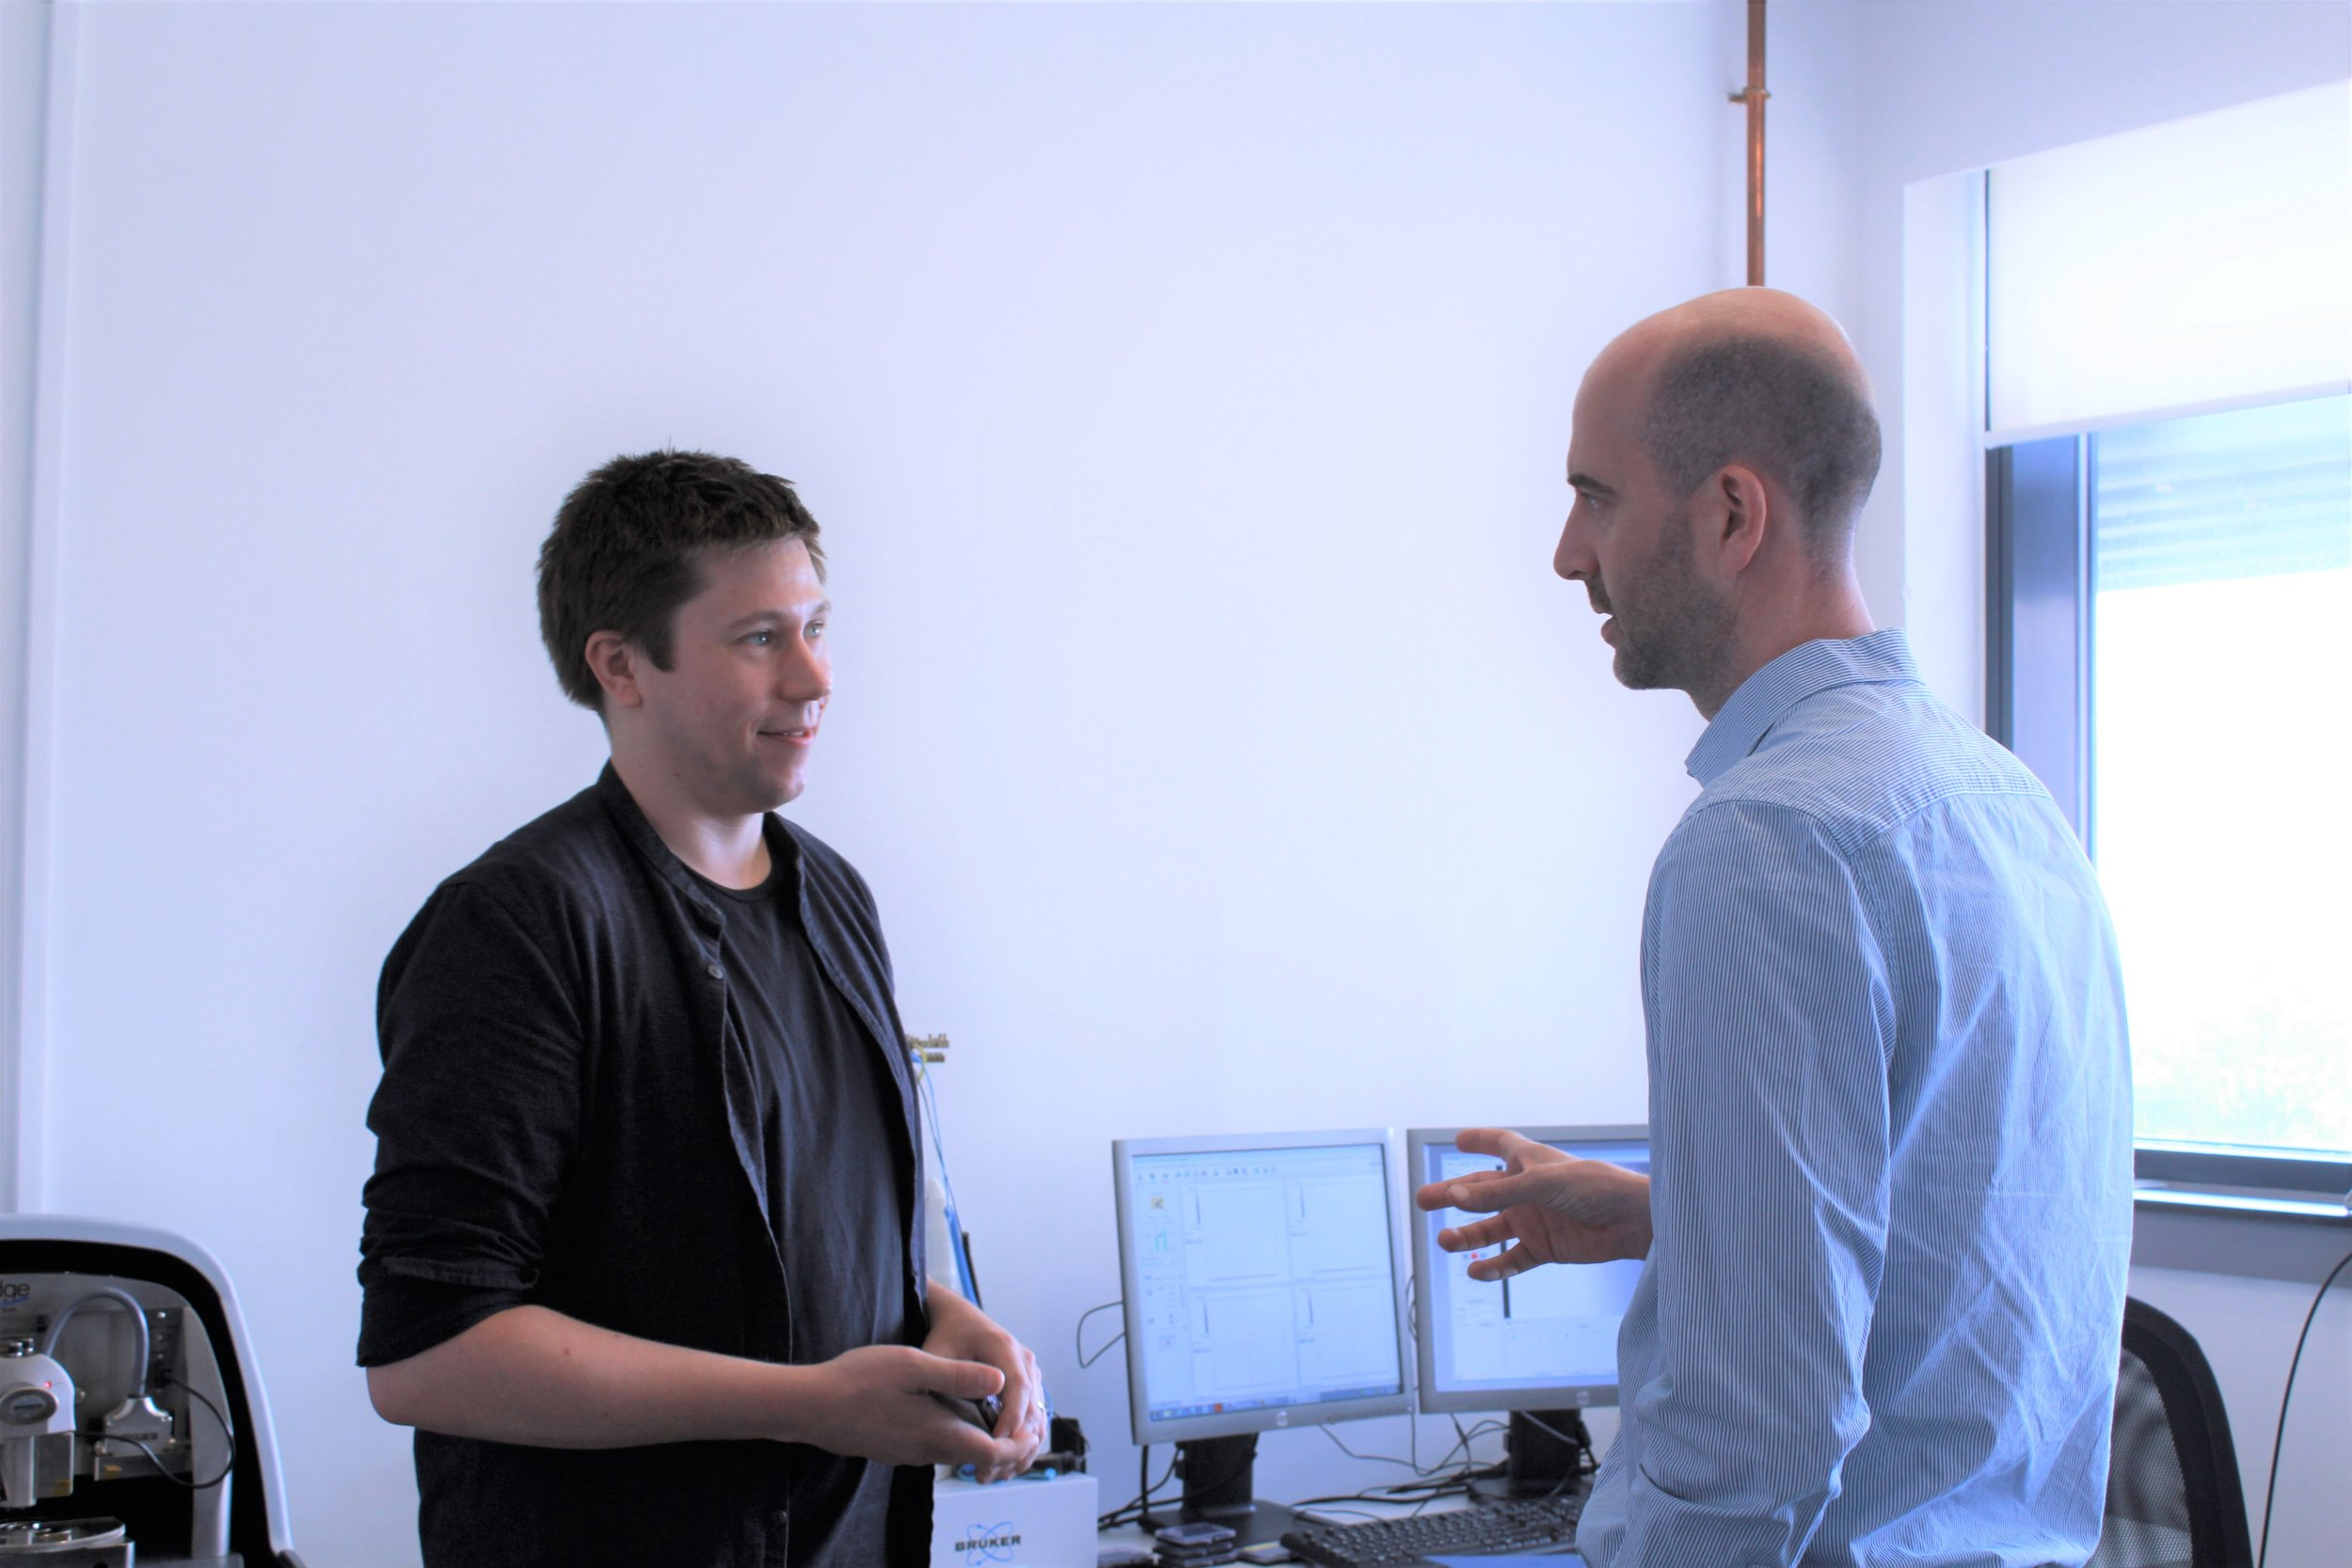 Talking to Filip Gucmann (one of our customers and CDTR research associate)